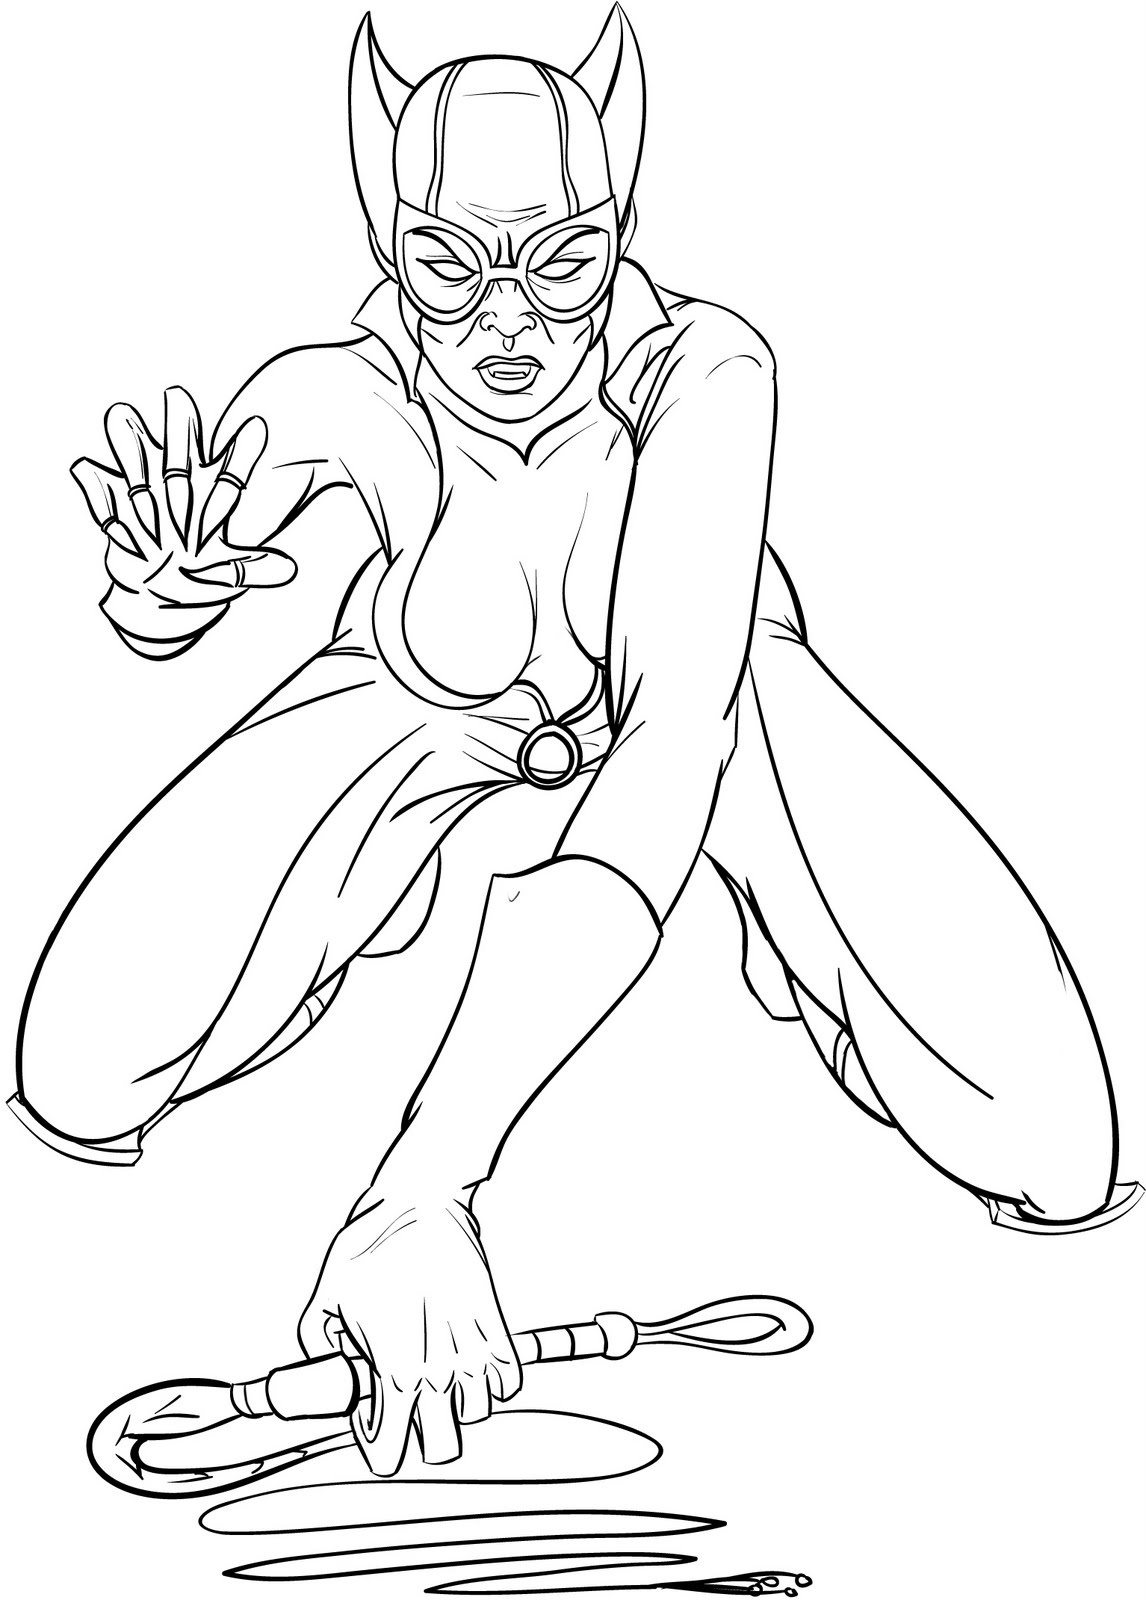 catwoman printable coloring pages catwoman coloring pages to download and print for free pages coloring printable catwoman